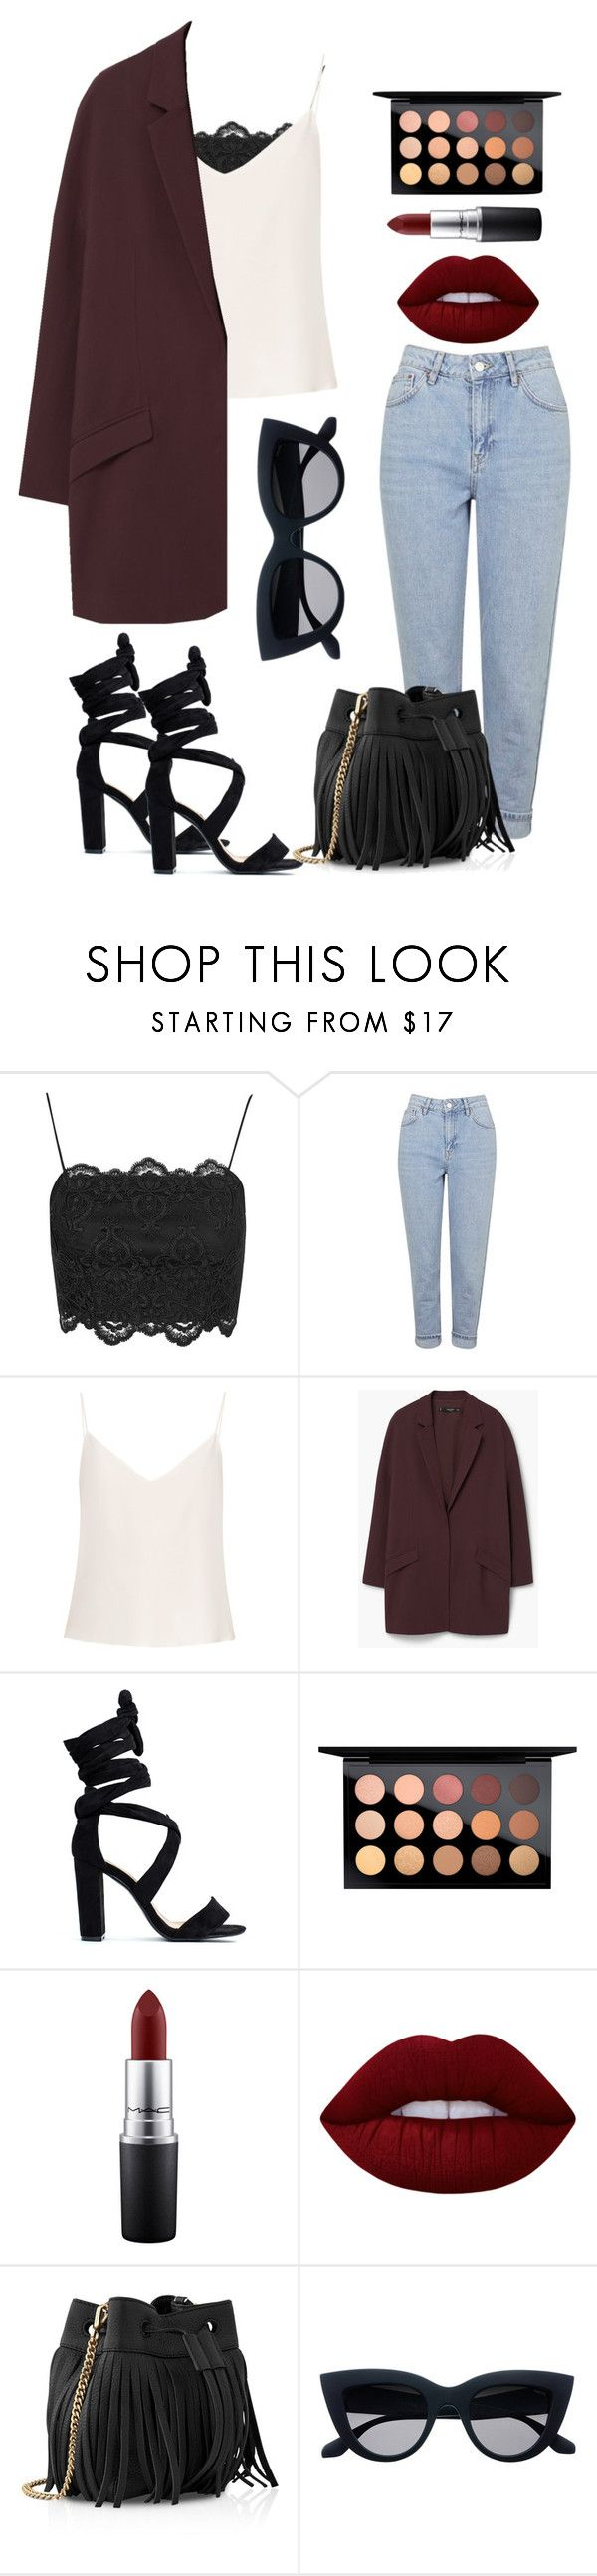 """Street Style"" by jaimeowen on Polyvore featuring Topshop, Raey, MANGO, MAC Cosmetics, Lime Crime and Whistles"